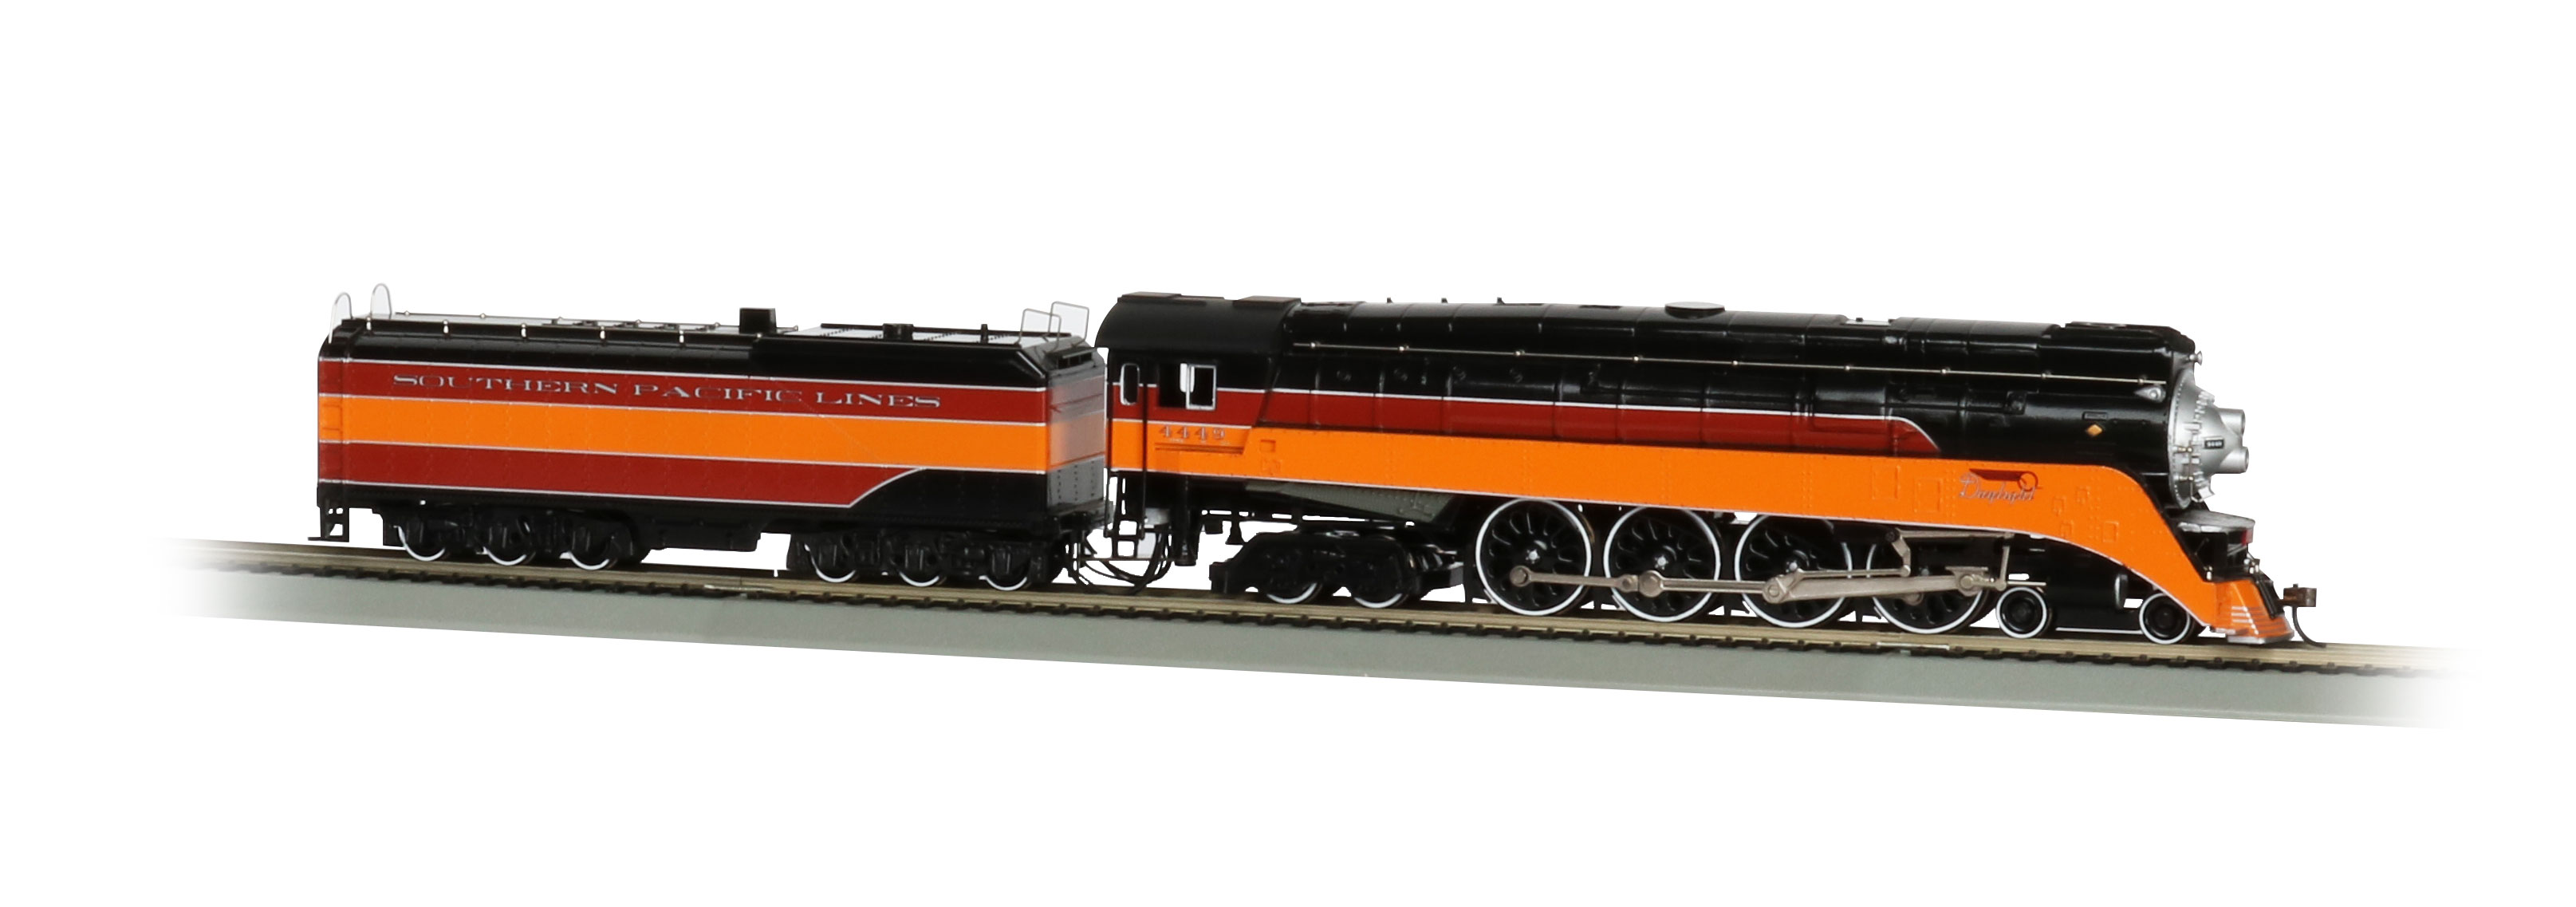 SP Daylight #4449 RAILFAN - GS4 4-8-4 - DCC SOUND VALUE (HO)